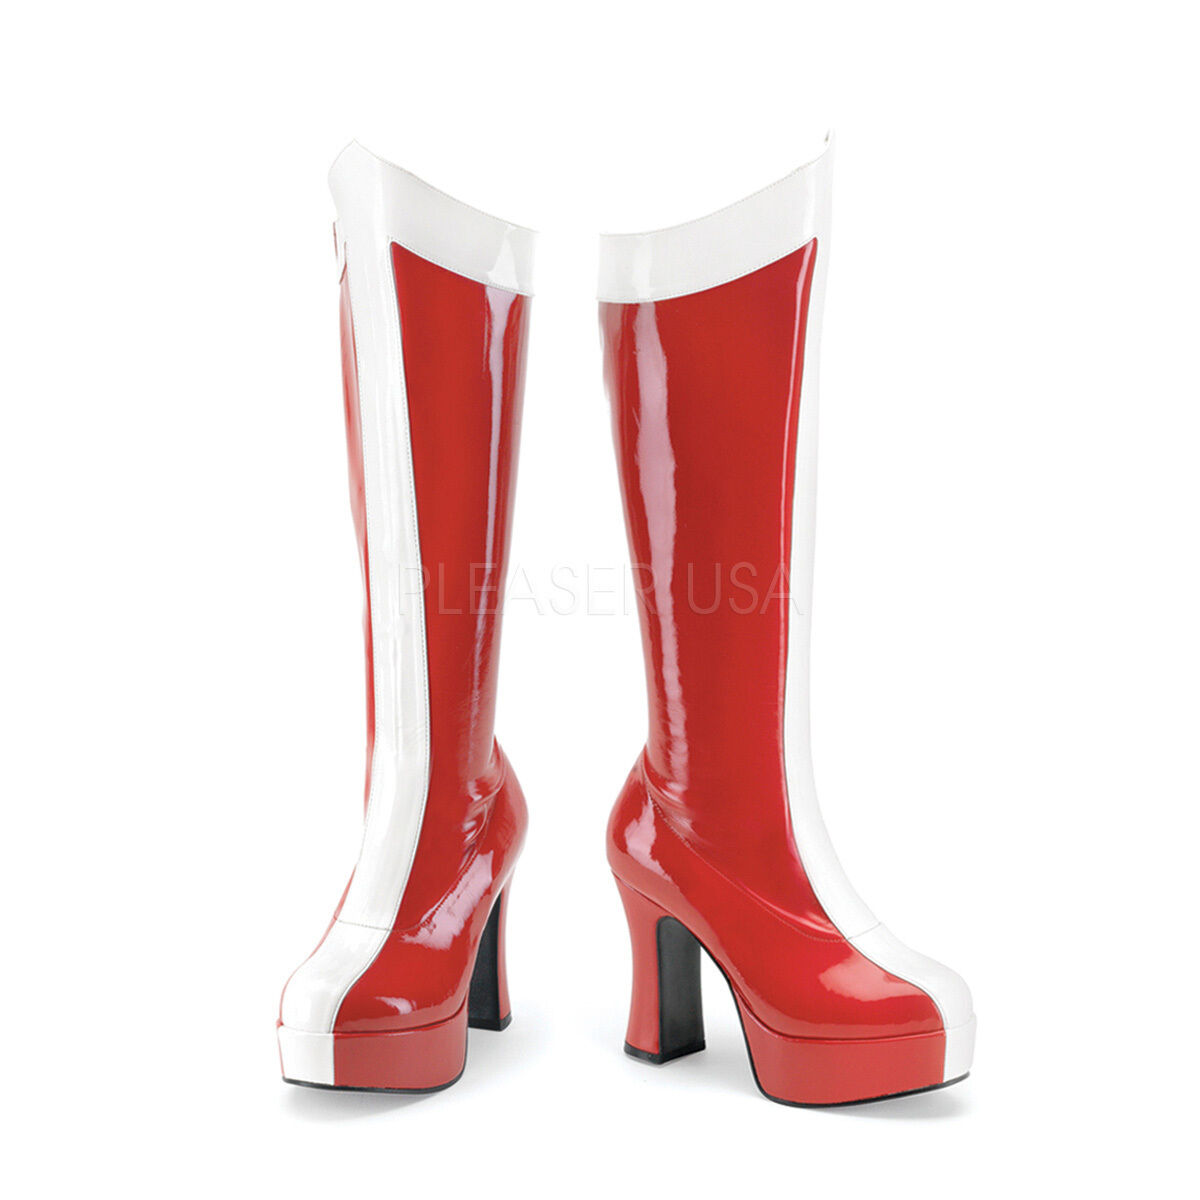 PLEASER FUNTASMA EXOTICA 305 305 305 FANCY DRESS WONDER WOMAN SUPER HERO KNEE Stiefel 41c8f1